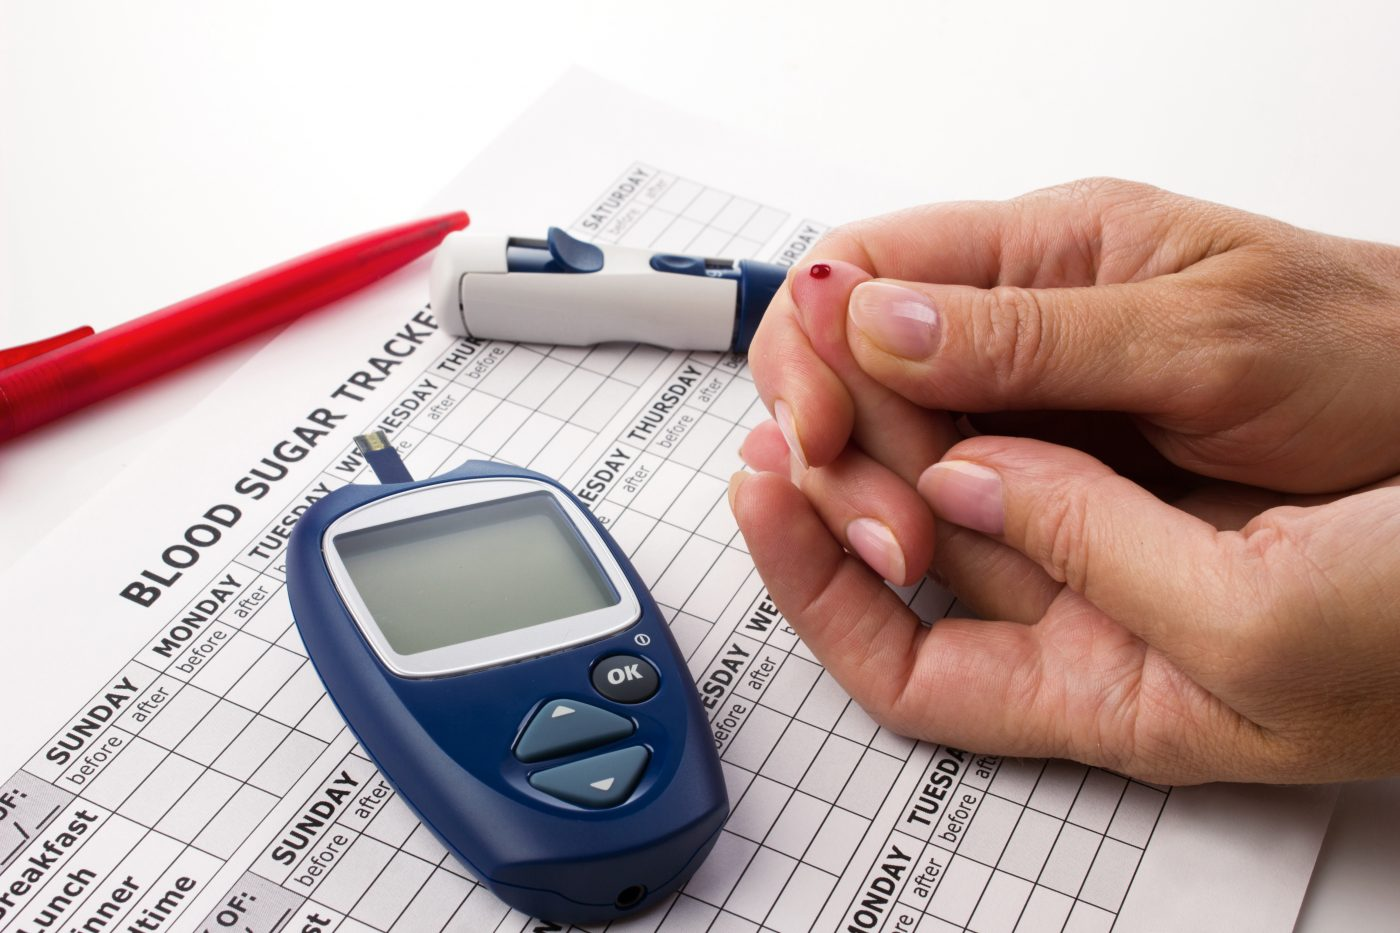 Trends in Diabetes Diagnosis Indicate an Increased Prevalence Between 1988 and 2012